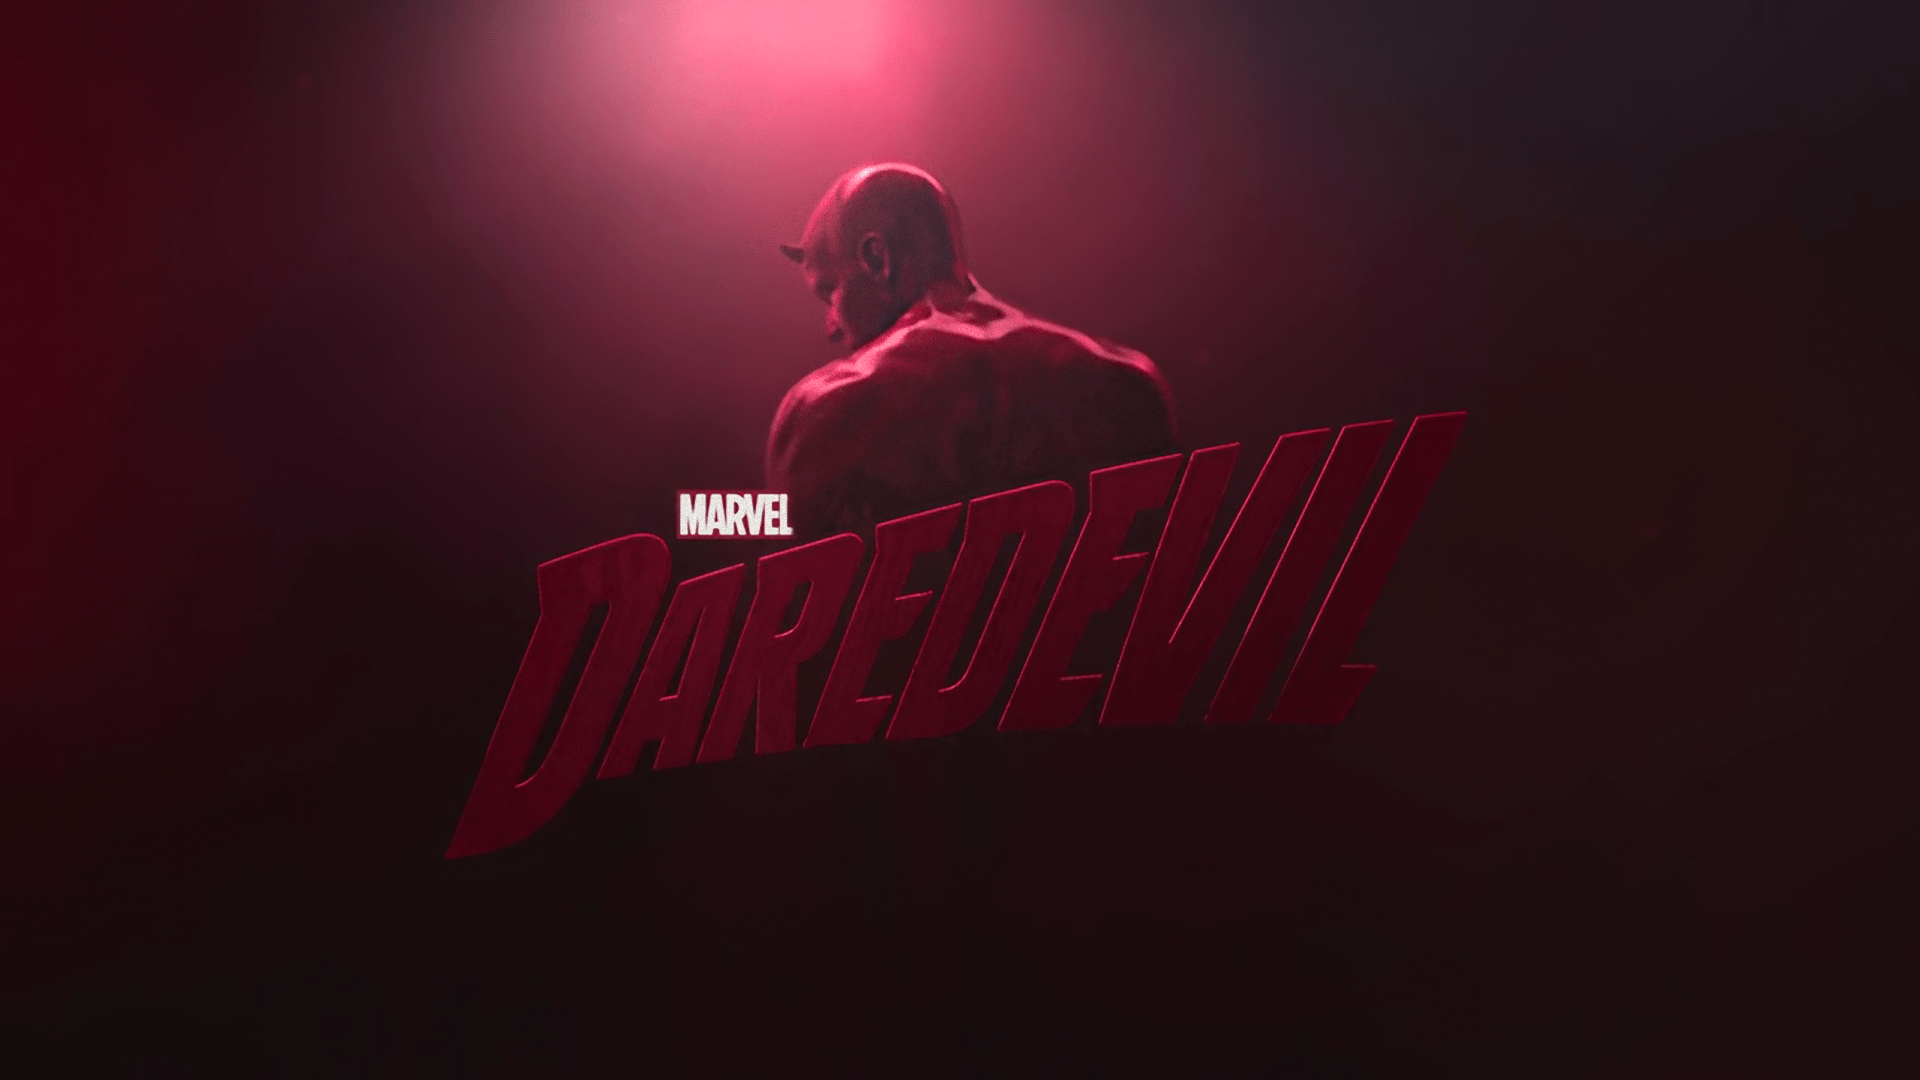 daredevil wallpaper in - photo #9